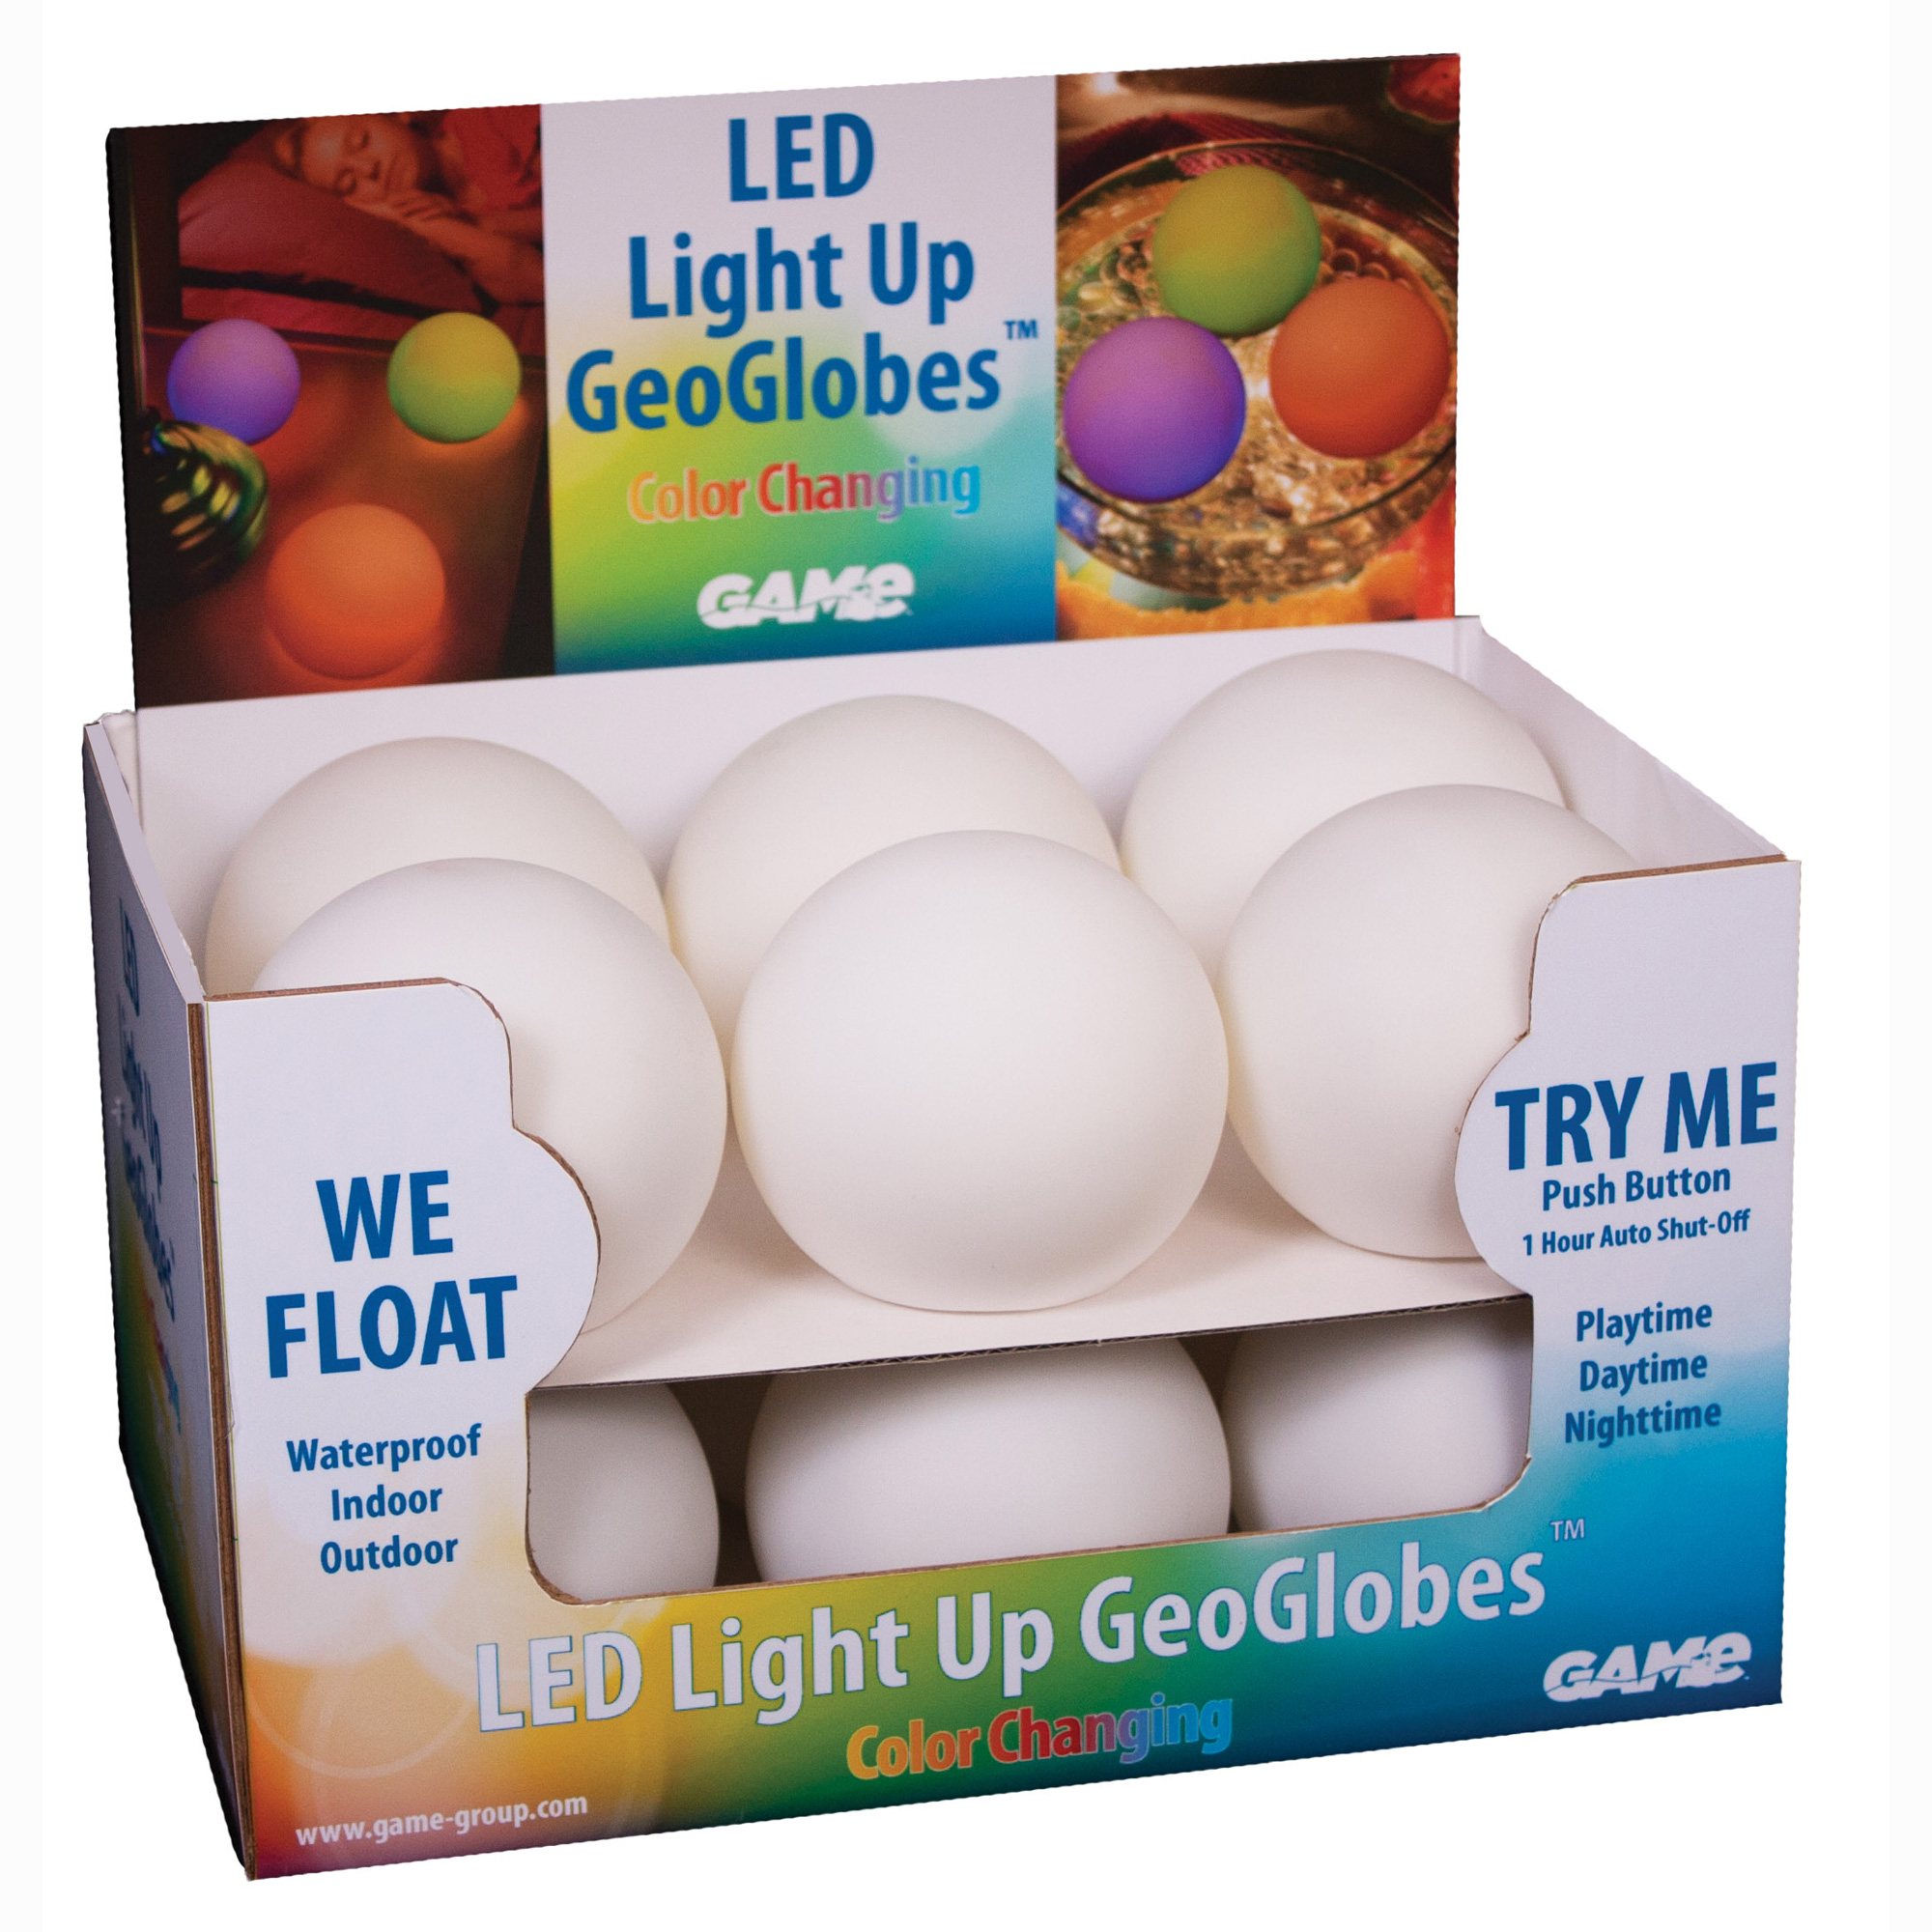 LED LIGHT UP GEOGLOBES - GAME Products